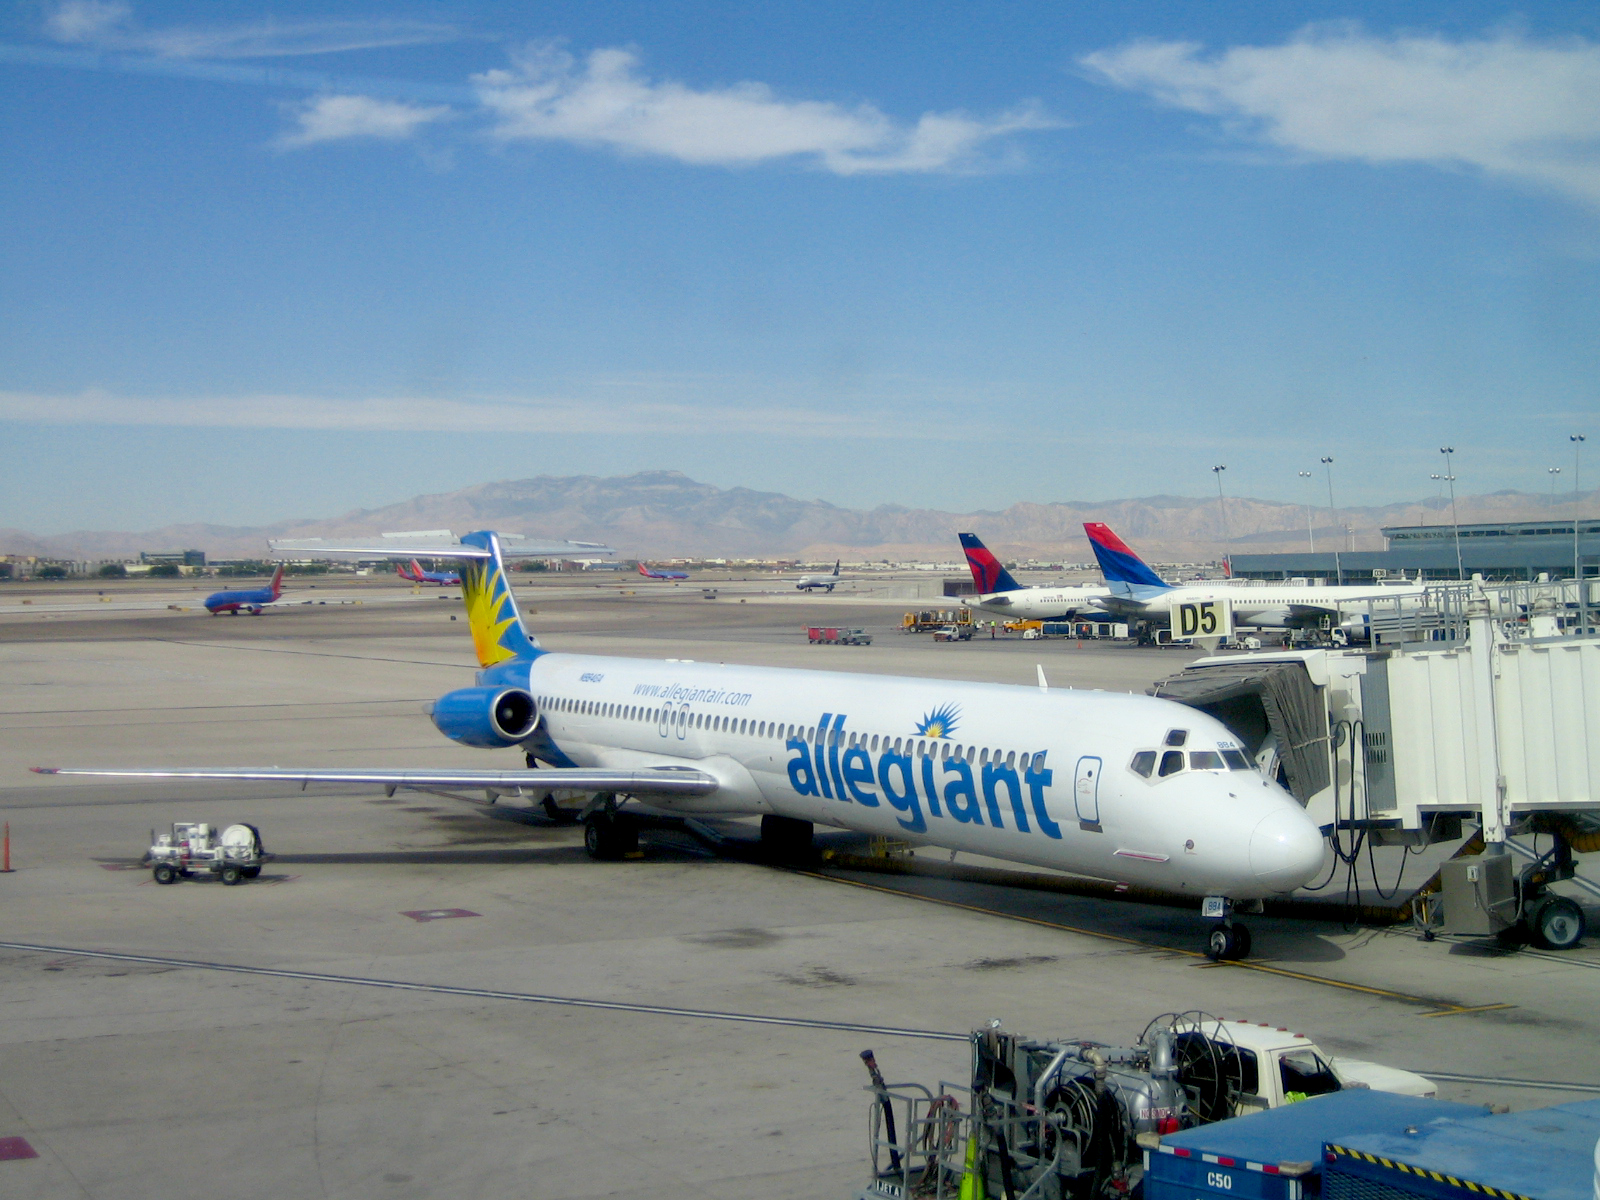 Allegiant is an American travel booking website that helps make leisure travel both affordable and convenient for clients. Whether you are seeking to visit a small city for a short vacation or explore a world class destination, Allegiant has a variety of options for any traveler.